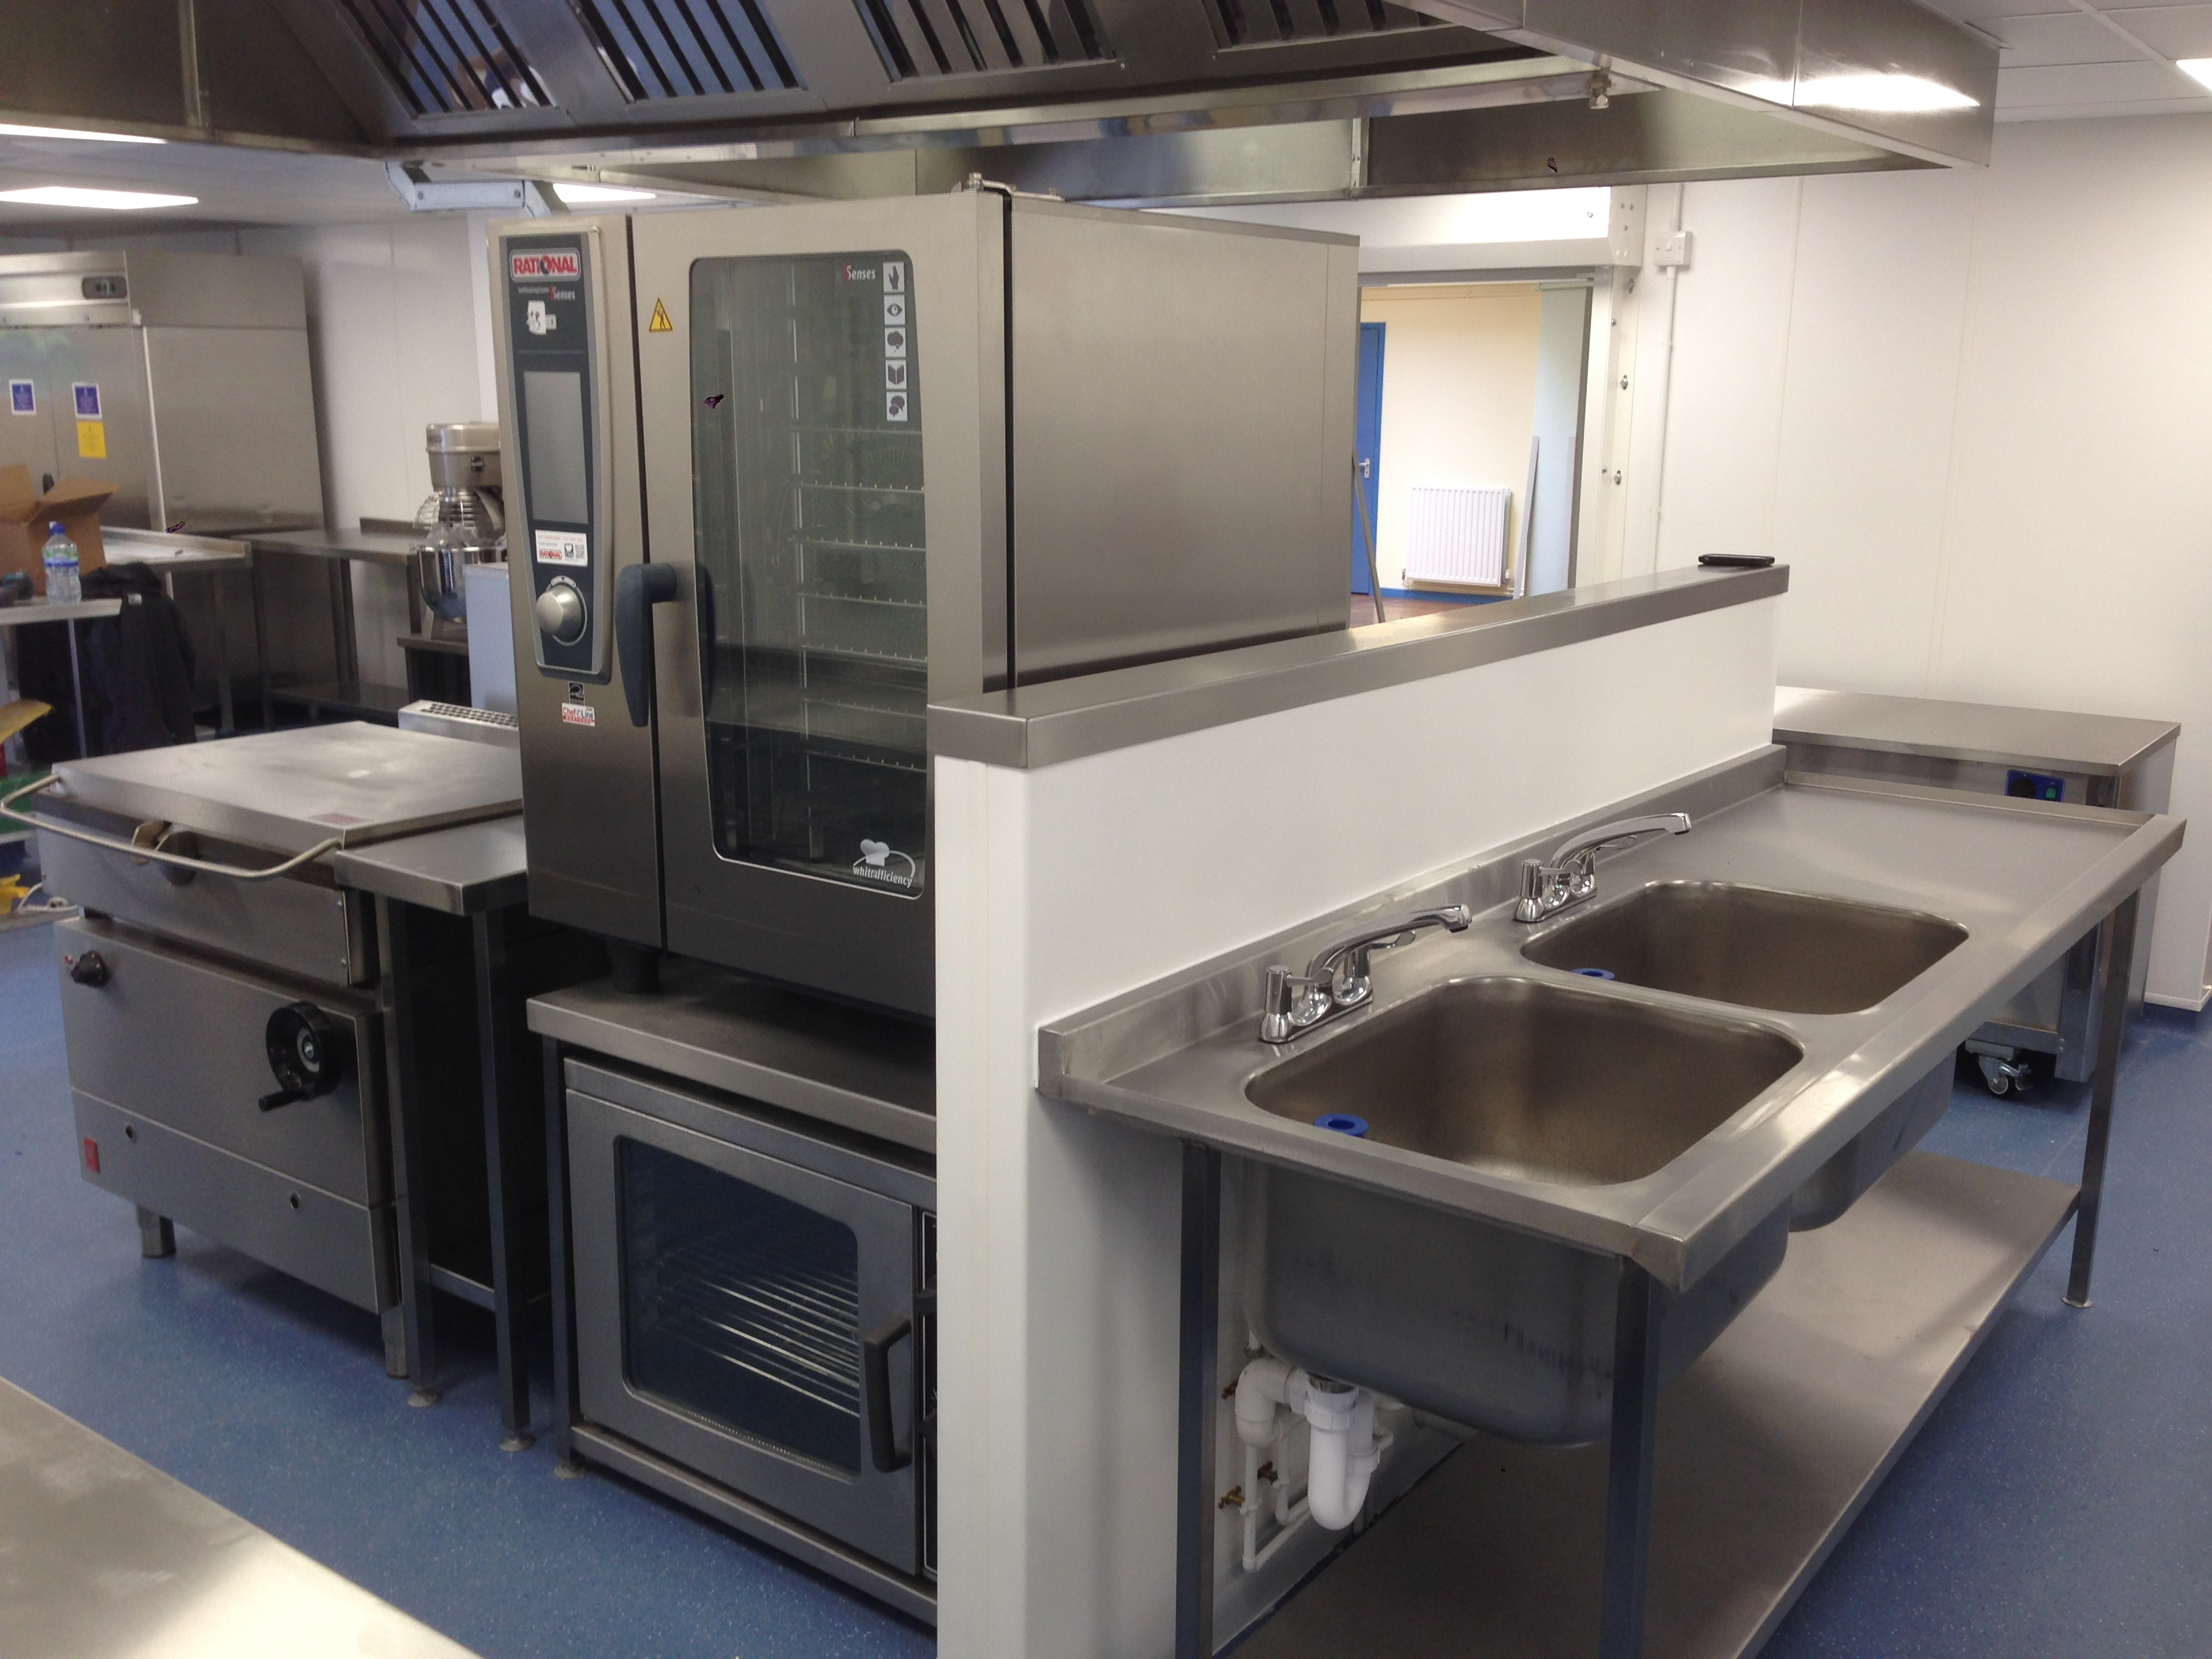 Commercial catering kitchen equipment surrey indigo Kitchen design companies in surrey